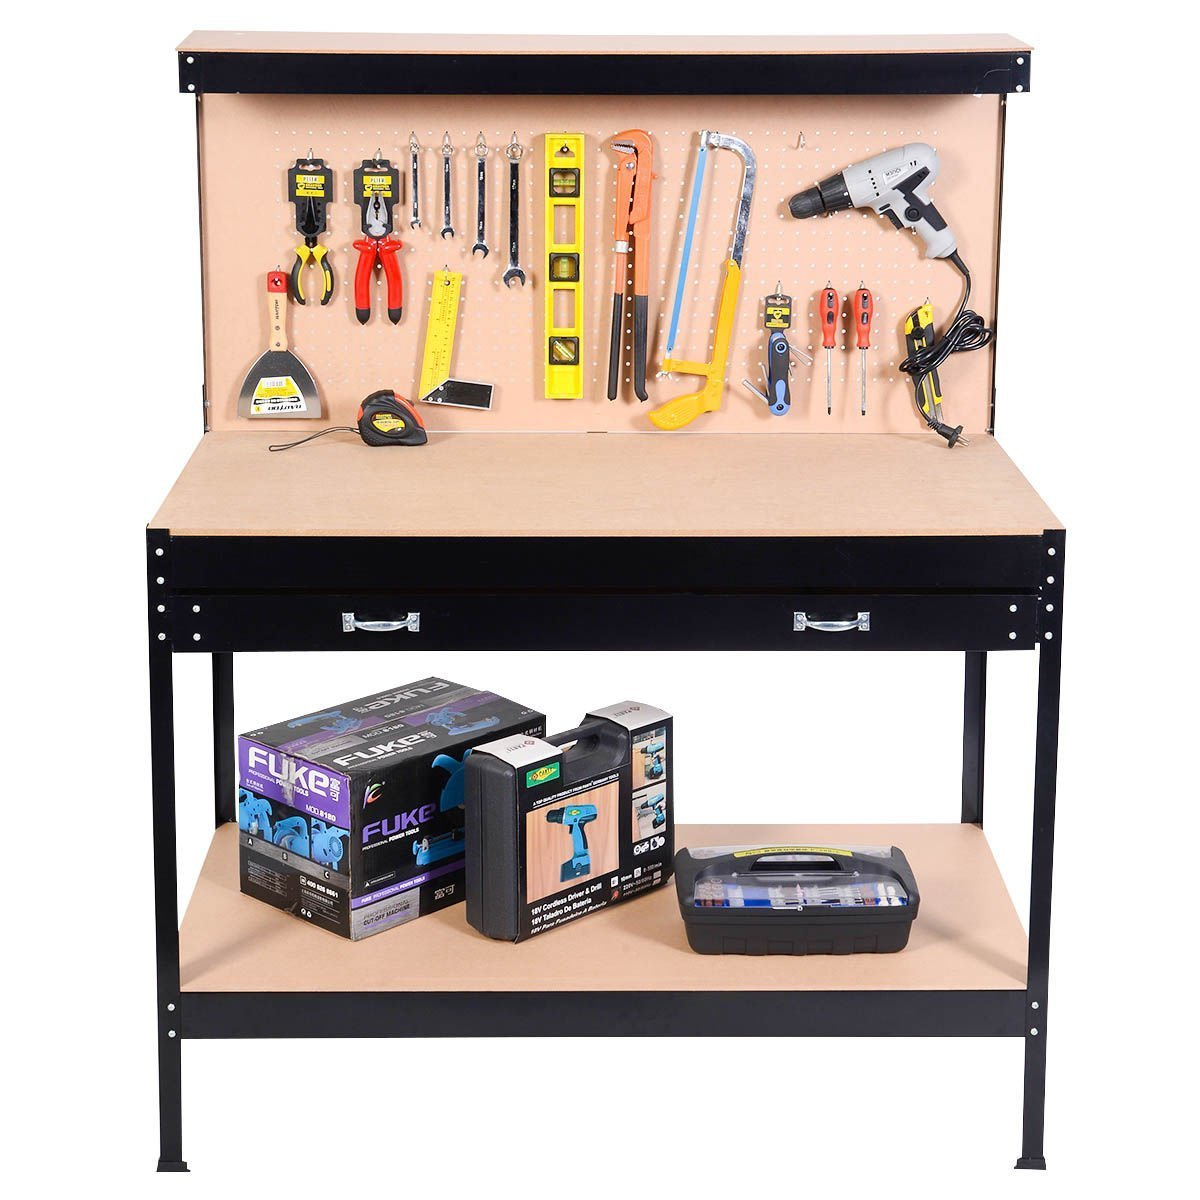 Work Bench Tool Storage Steel Frame Tool Workshop Table W/ Drawer and Peg Boar Bonus free ebook By Allgoodsdelight365 by allgoodsdelight365 (Image #2)